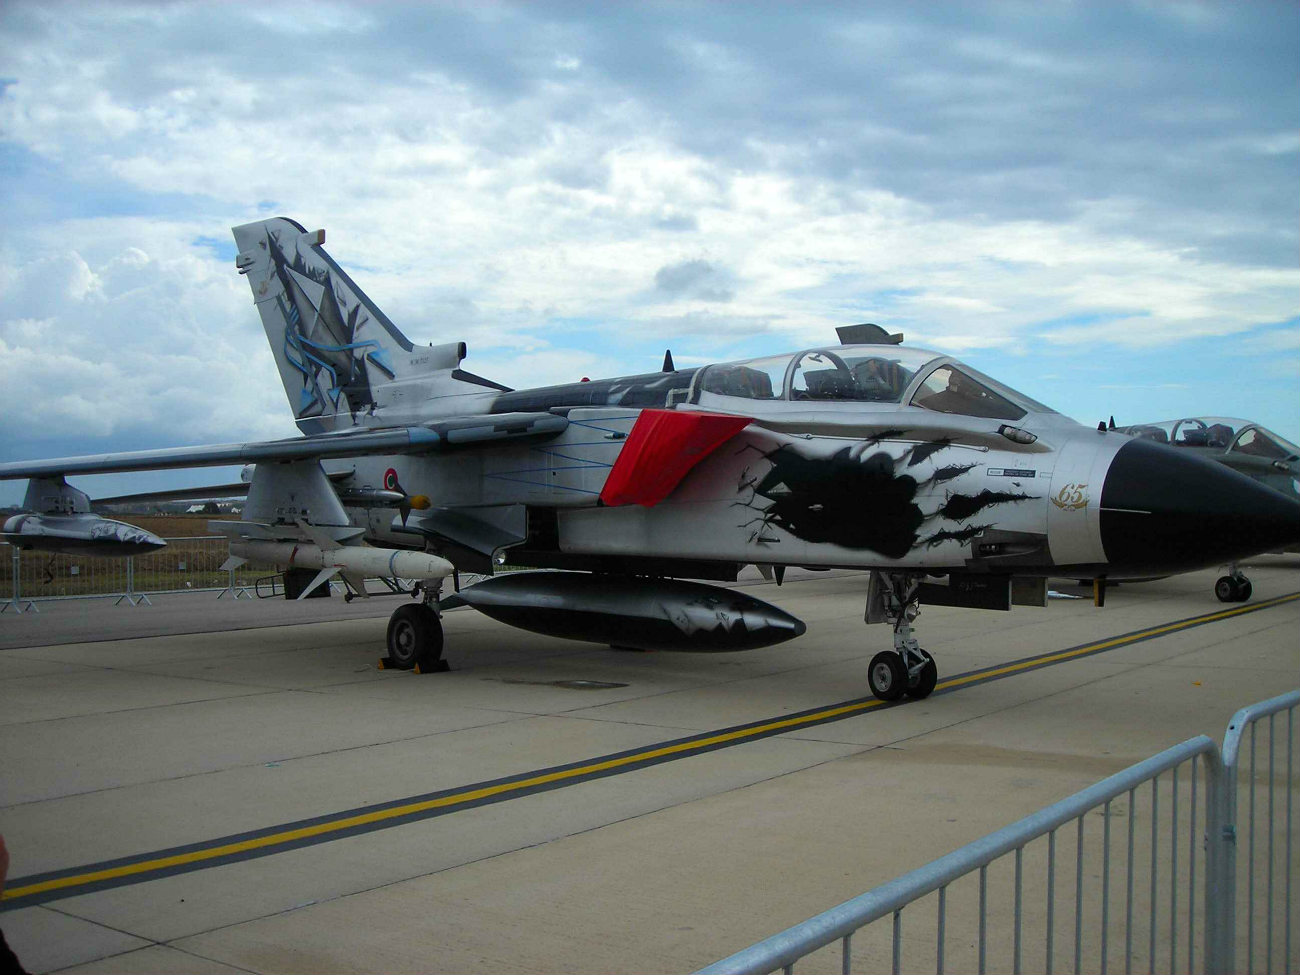 Captivating Images of Panavia Tornado parked